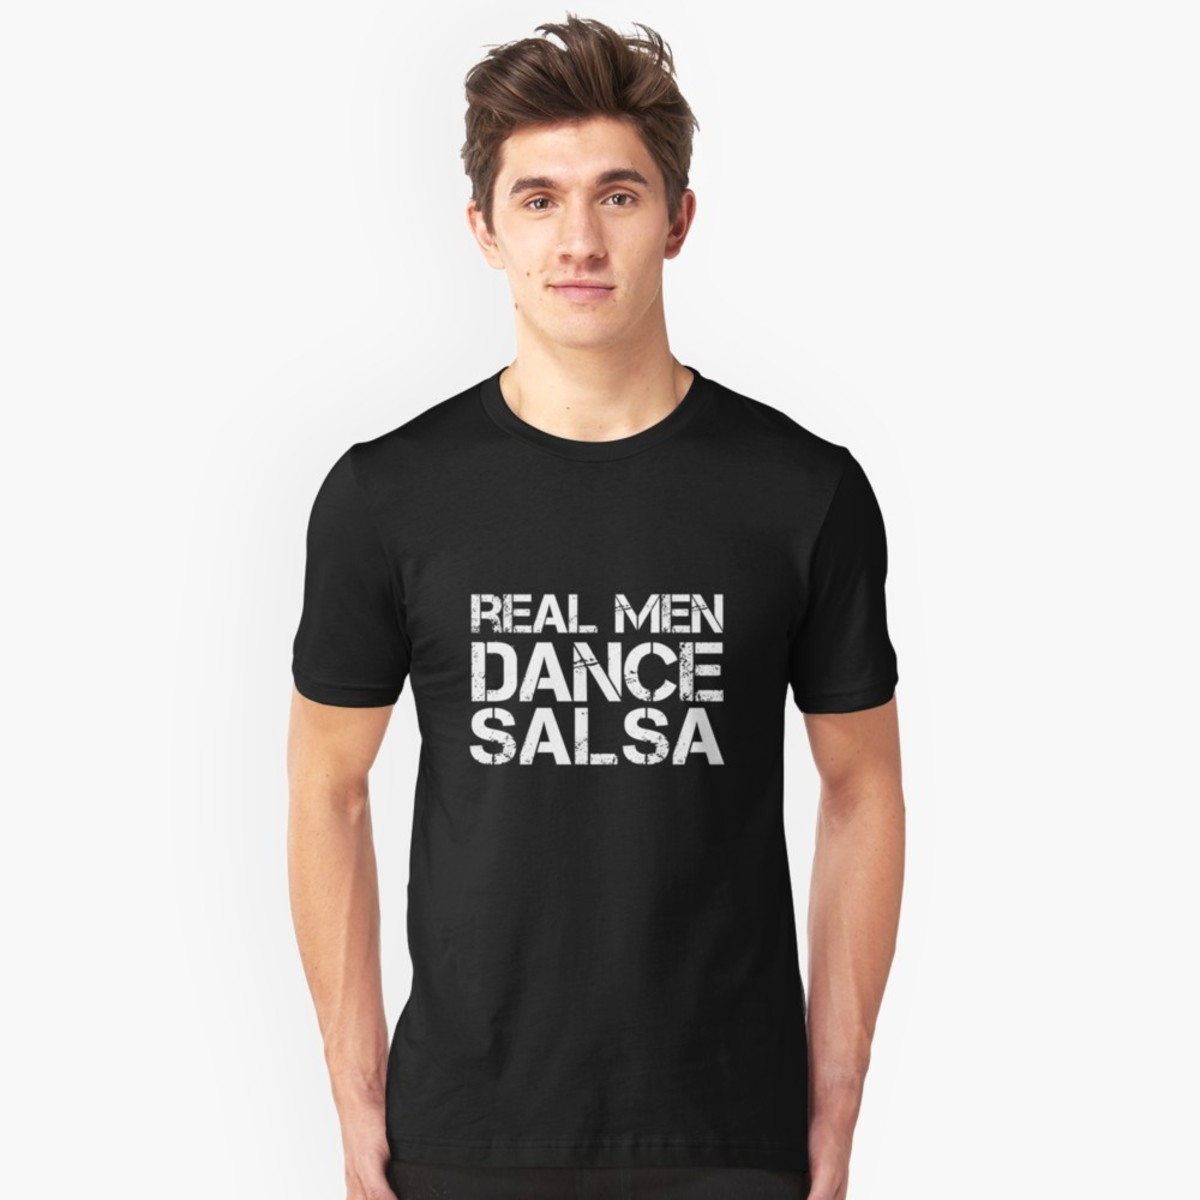 T-shirts with a fun dance quote can be good conversation starters, especially if you are going to a more casual salsa club.